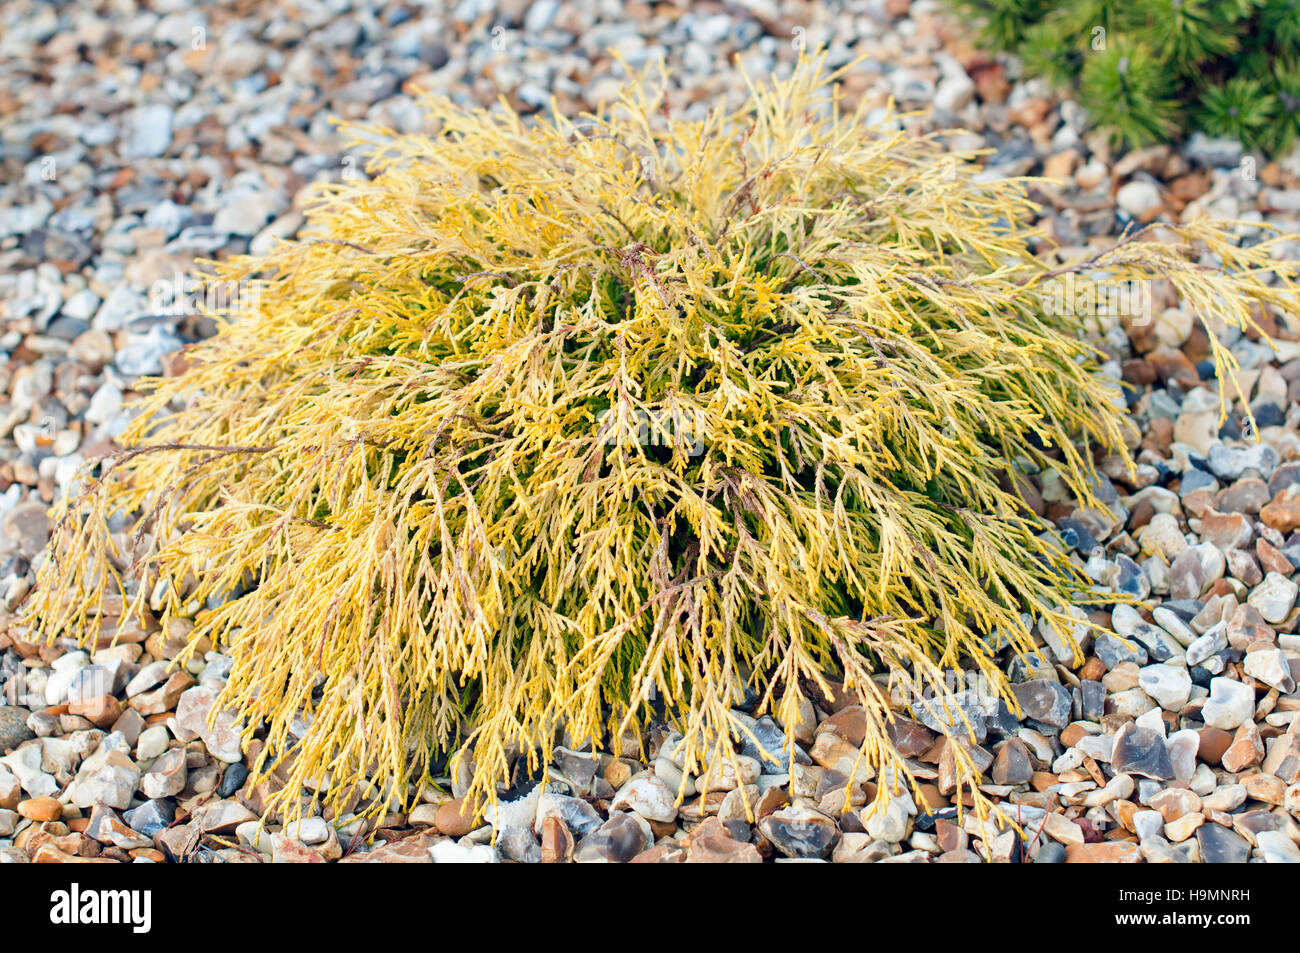 CHAMAECYPARIS OBTUSA RASHAHIBA PLANTED IN A GRAVEL BED - Stock Image